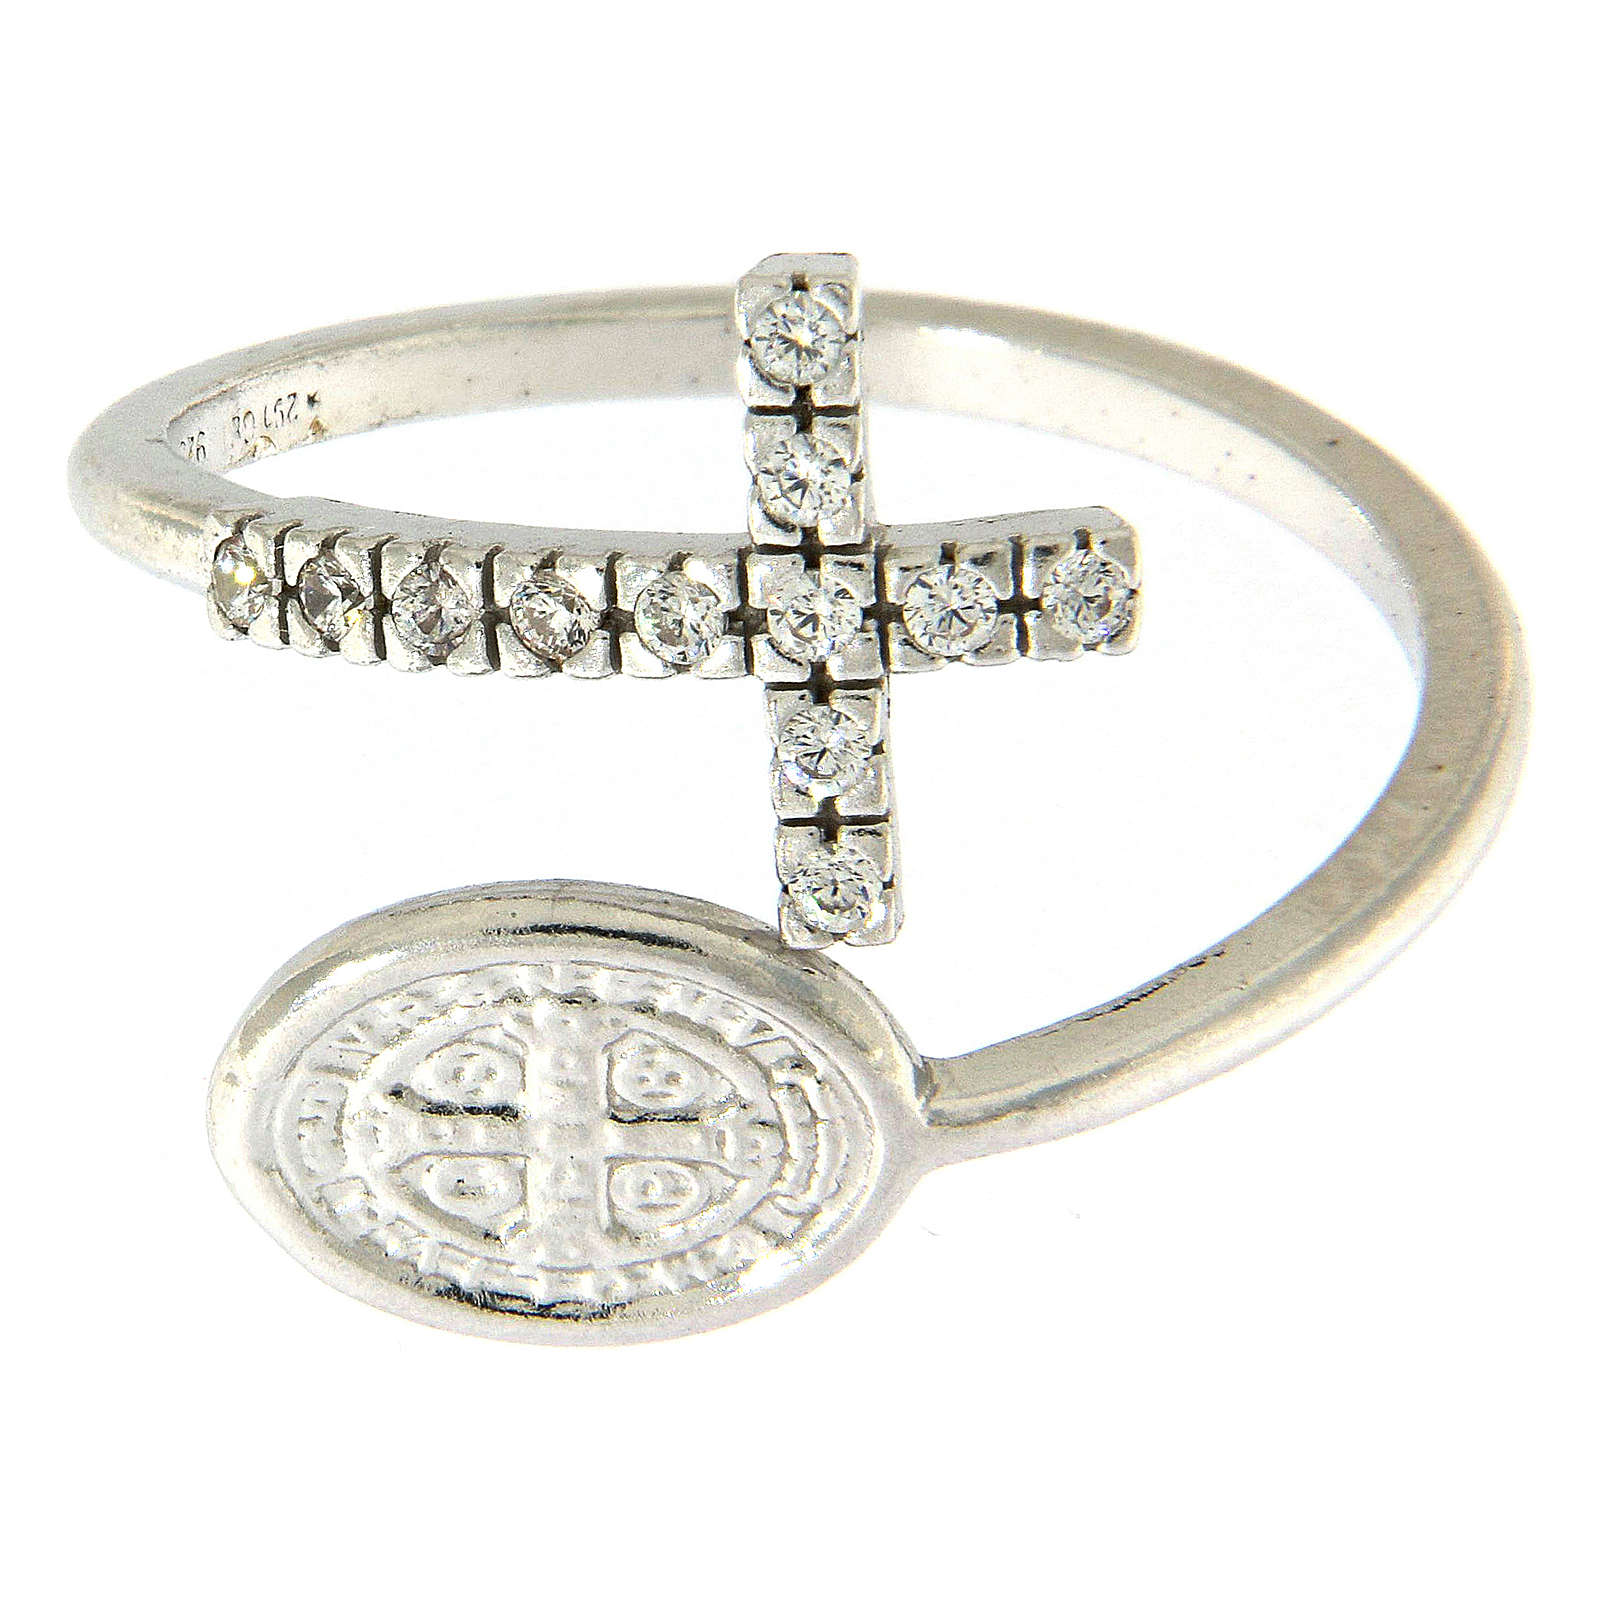 Ring with St. Benedict's medal in 925 silver and white rhinestones 3